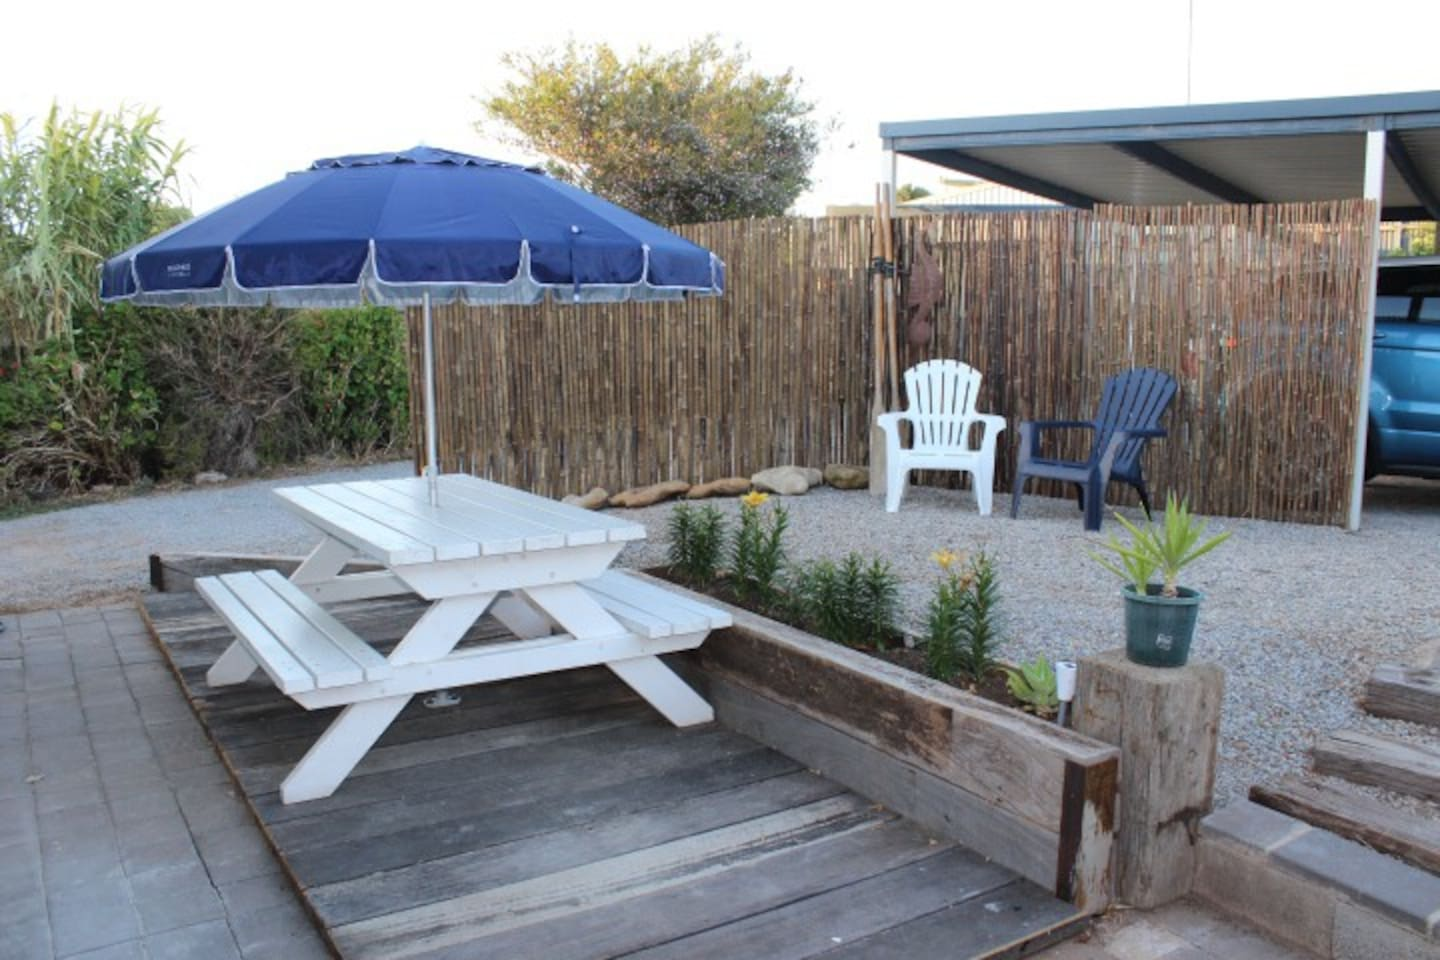 Out door area with table setting and bbq.